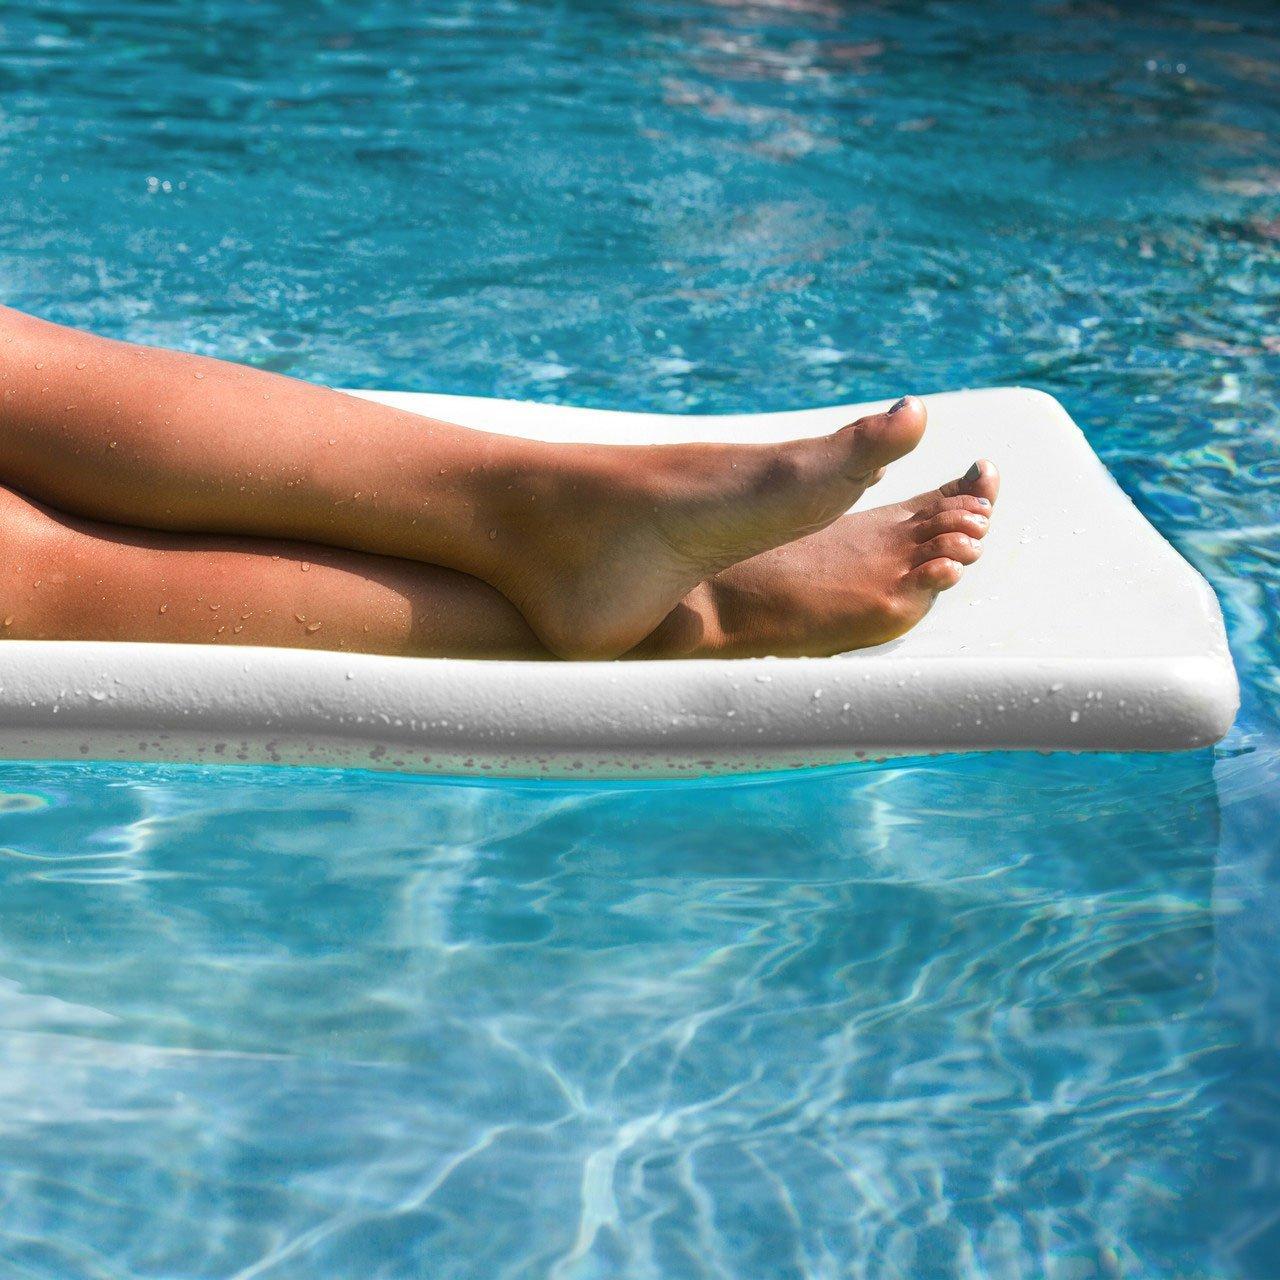 TRC Recreation Sunsation 70 Inch Thick Foam Raft Lounger Mat Pool Float, White (2 Pack) by TRC Recreation (Image #3)